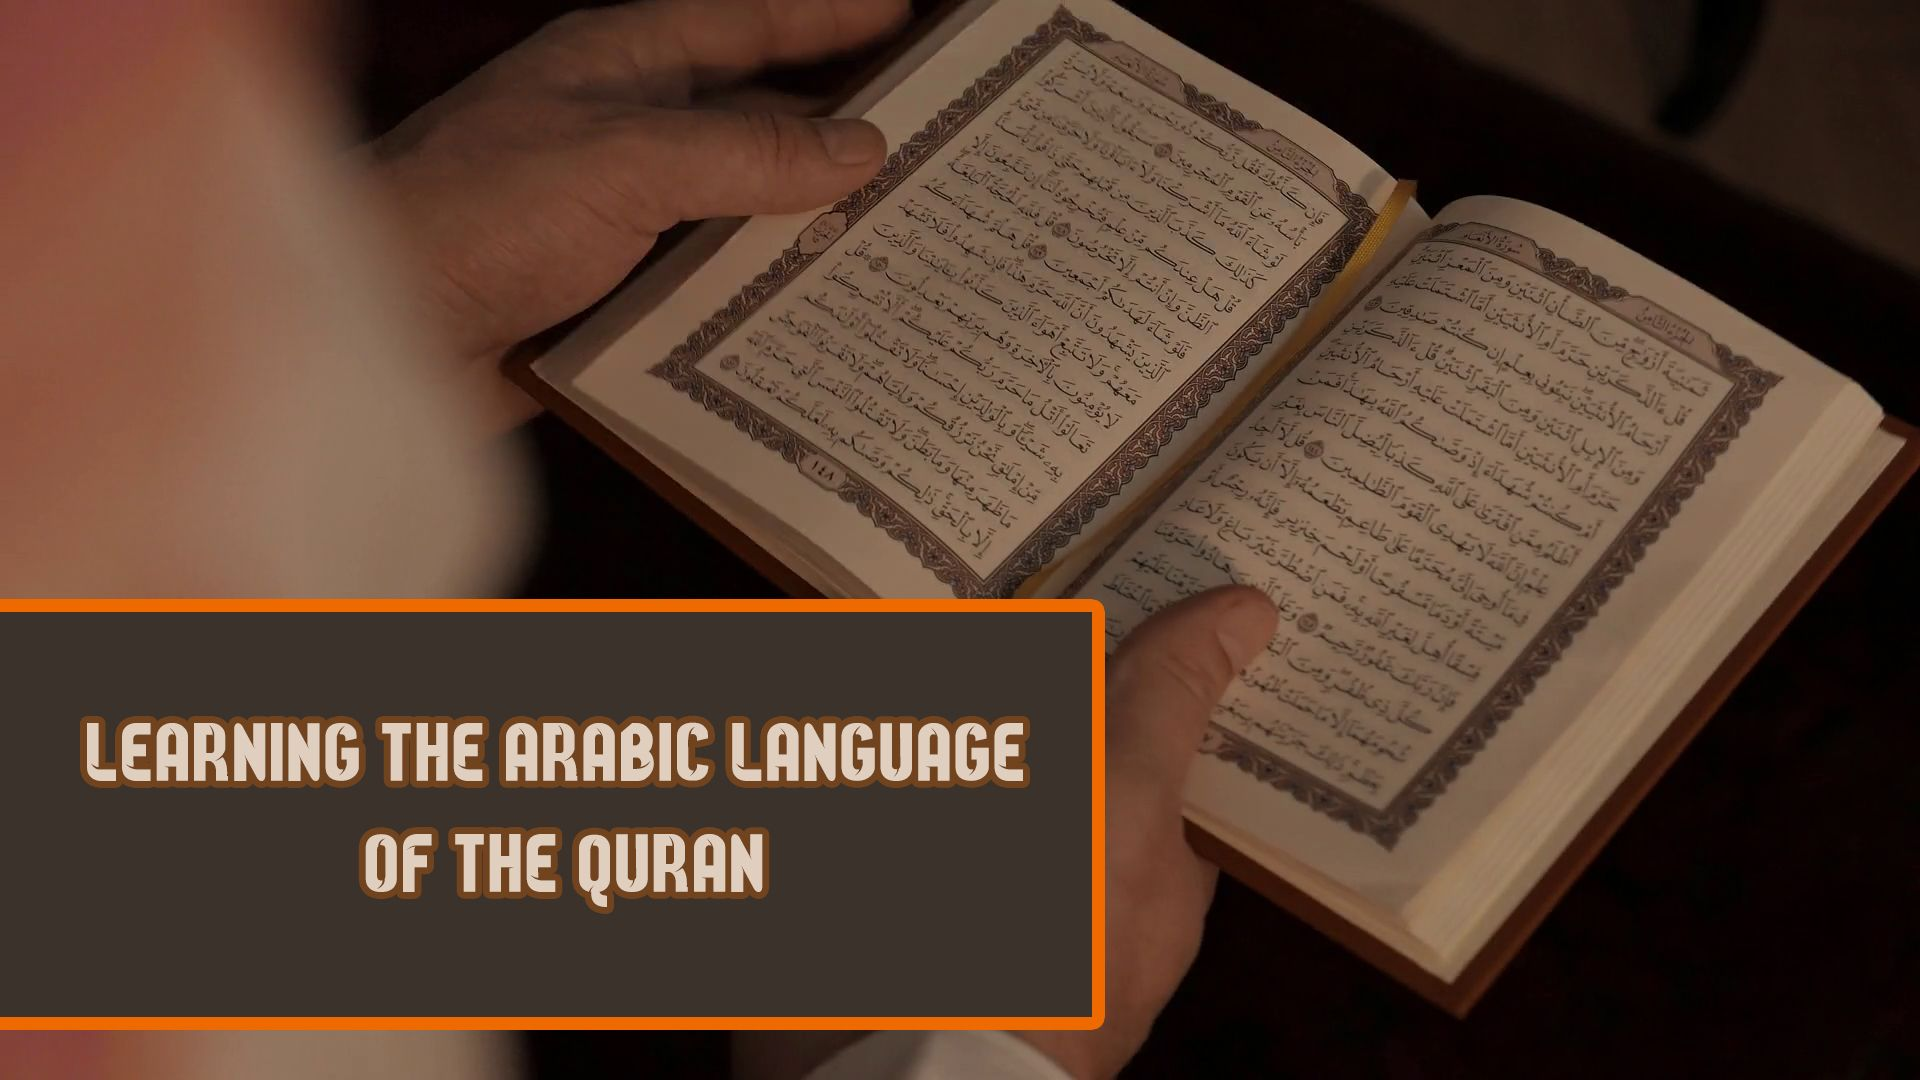 Arabic language of the quran